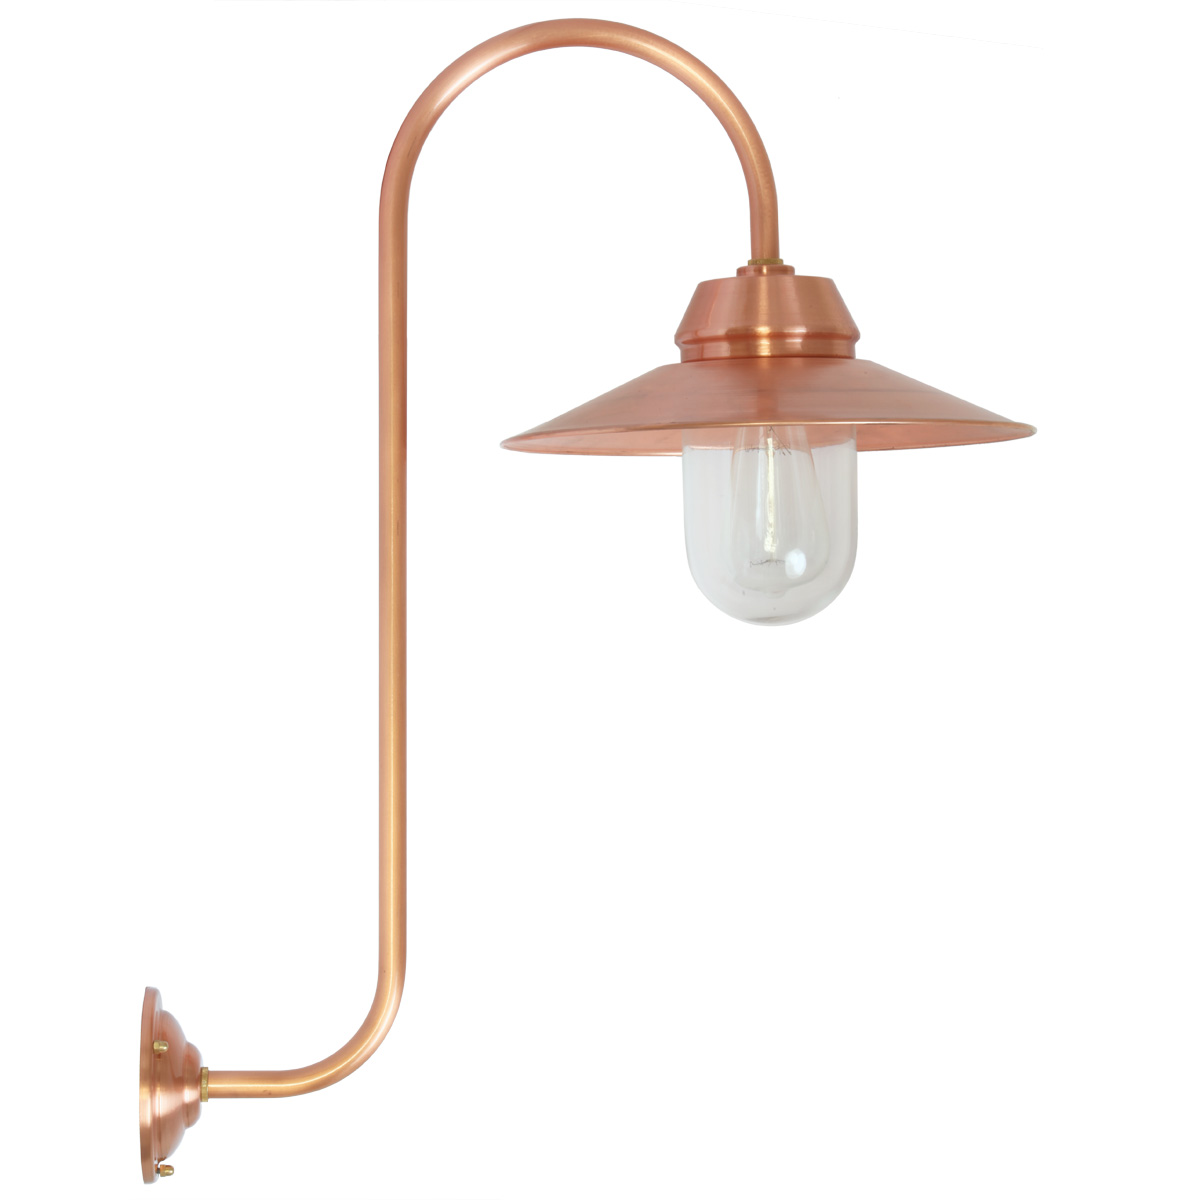 Outdoor Barn Lamp: All-Purpose Outdoor Barn Lamp BW 135 Copper